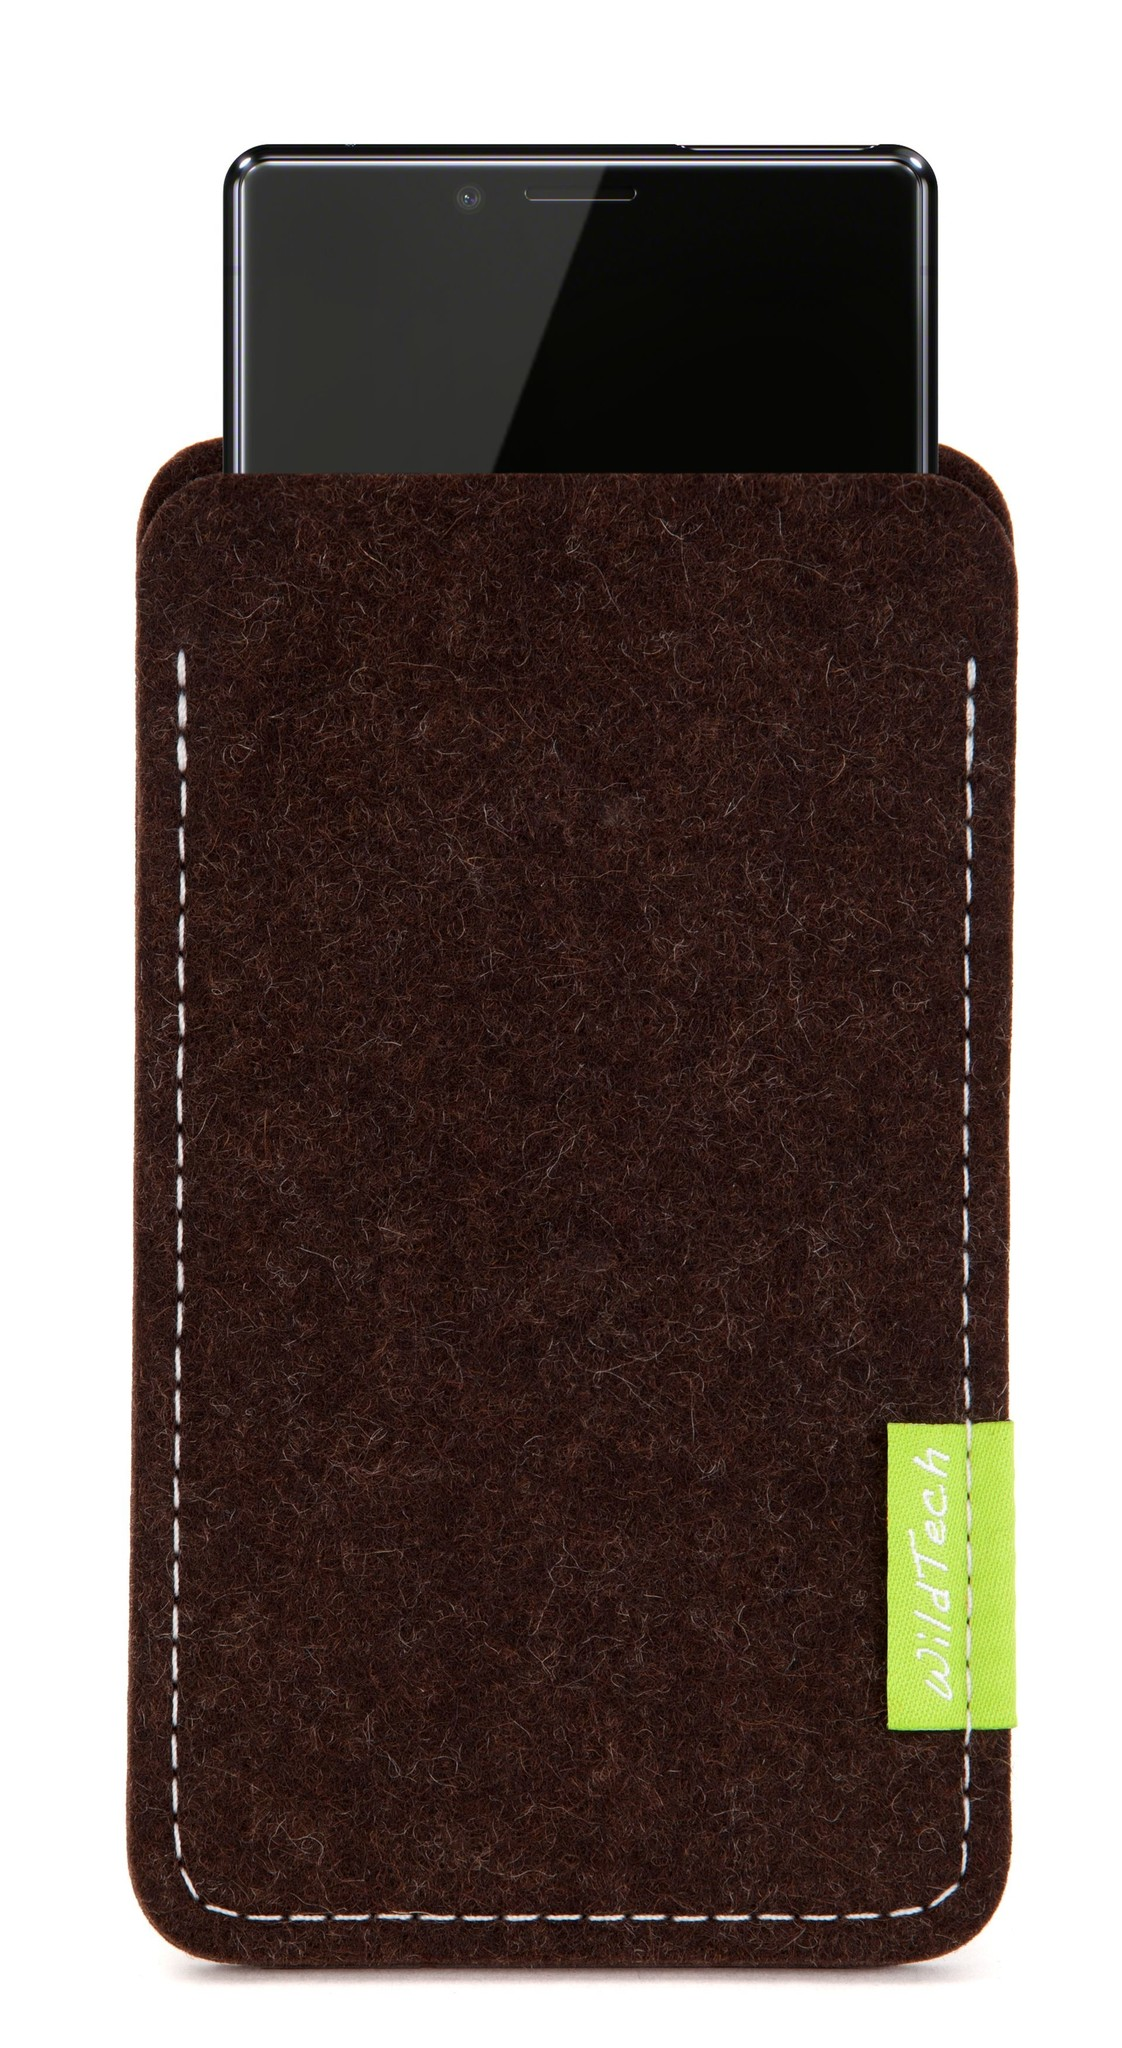 Xperia Sleeve Truffle-Brown-1